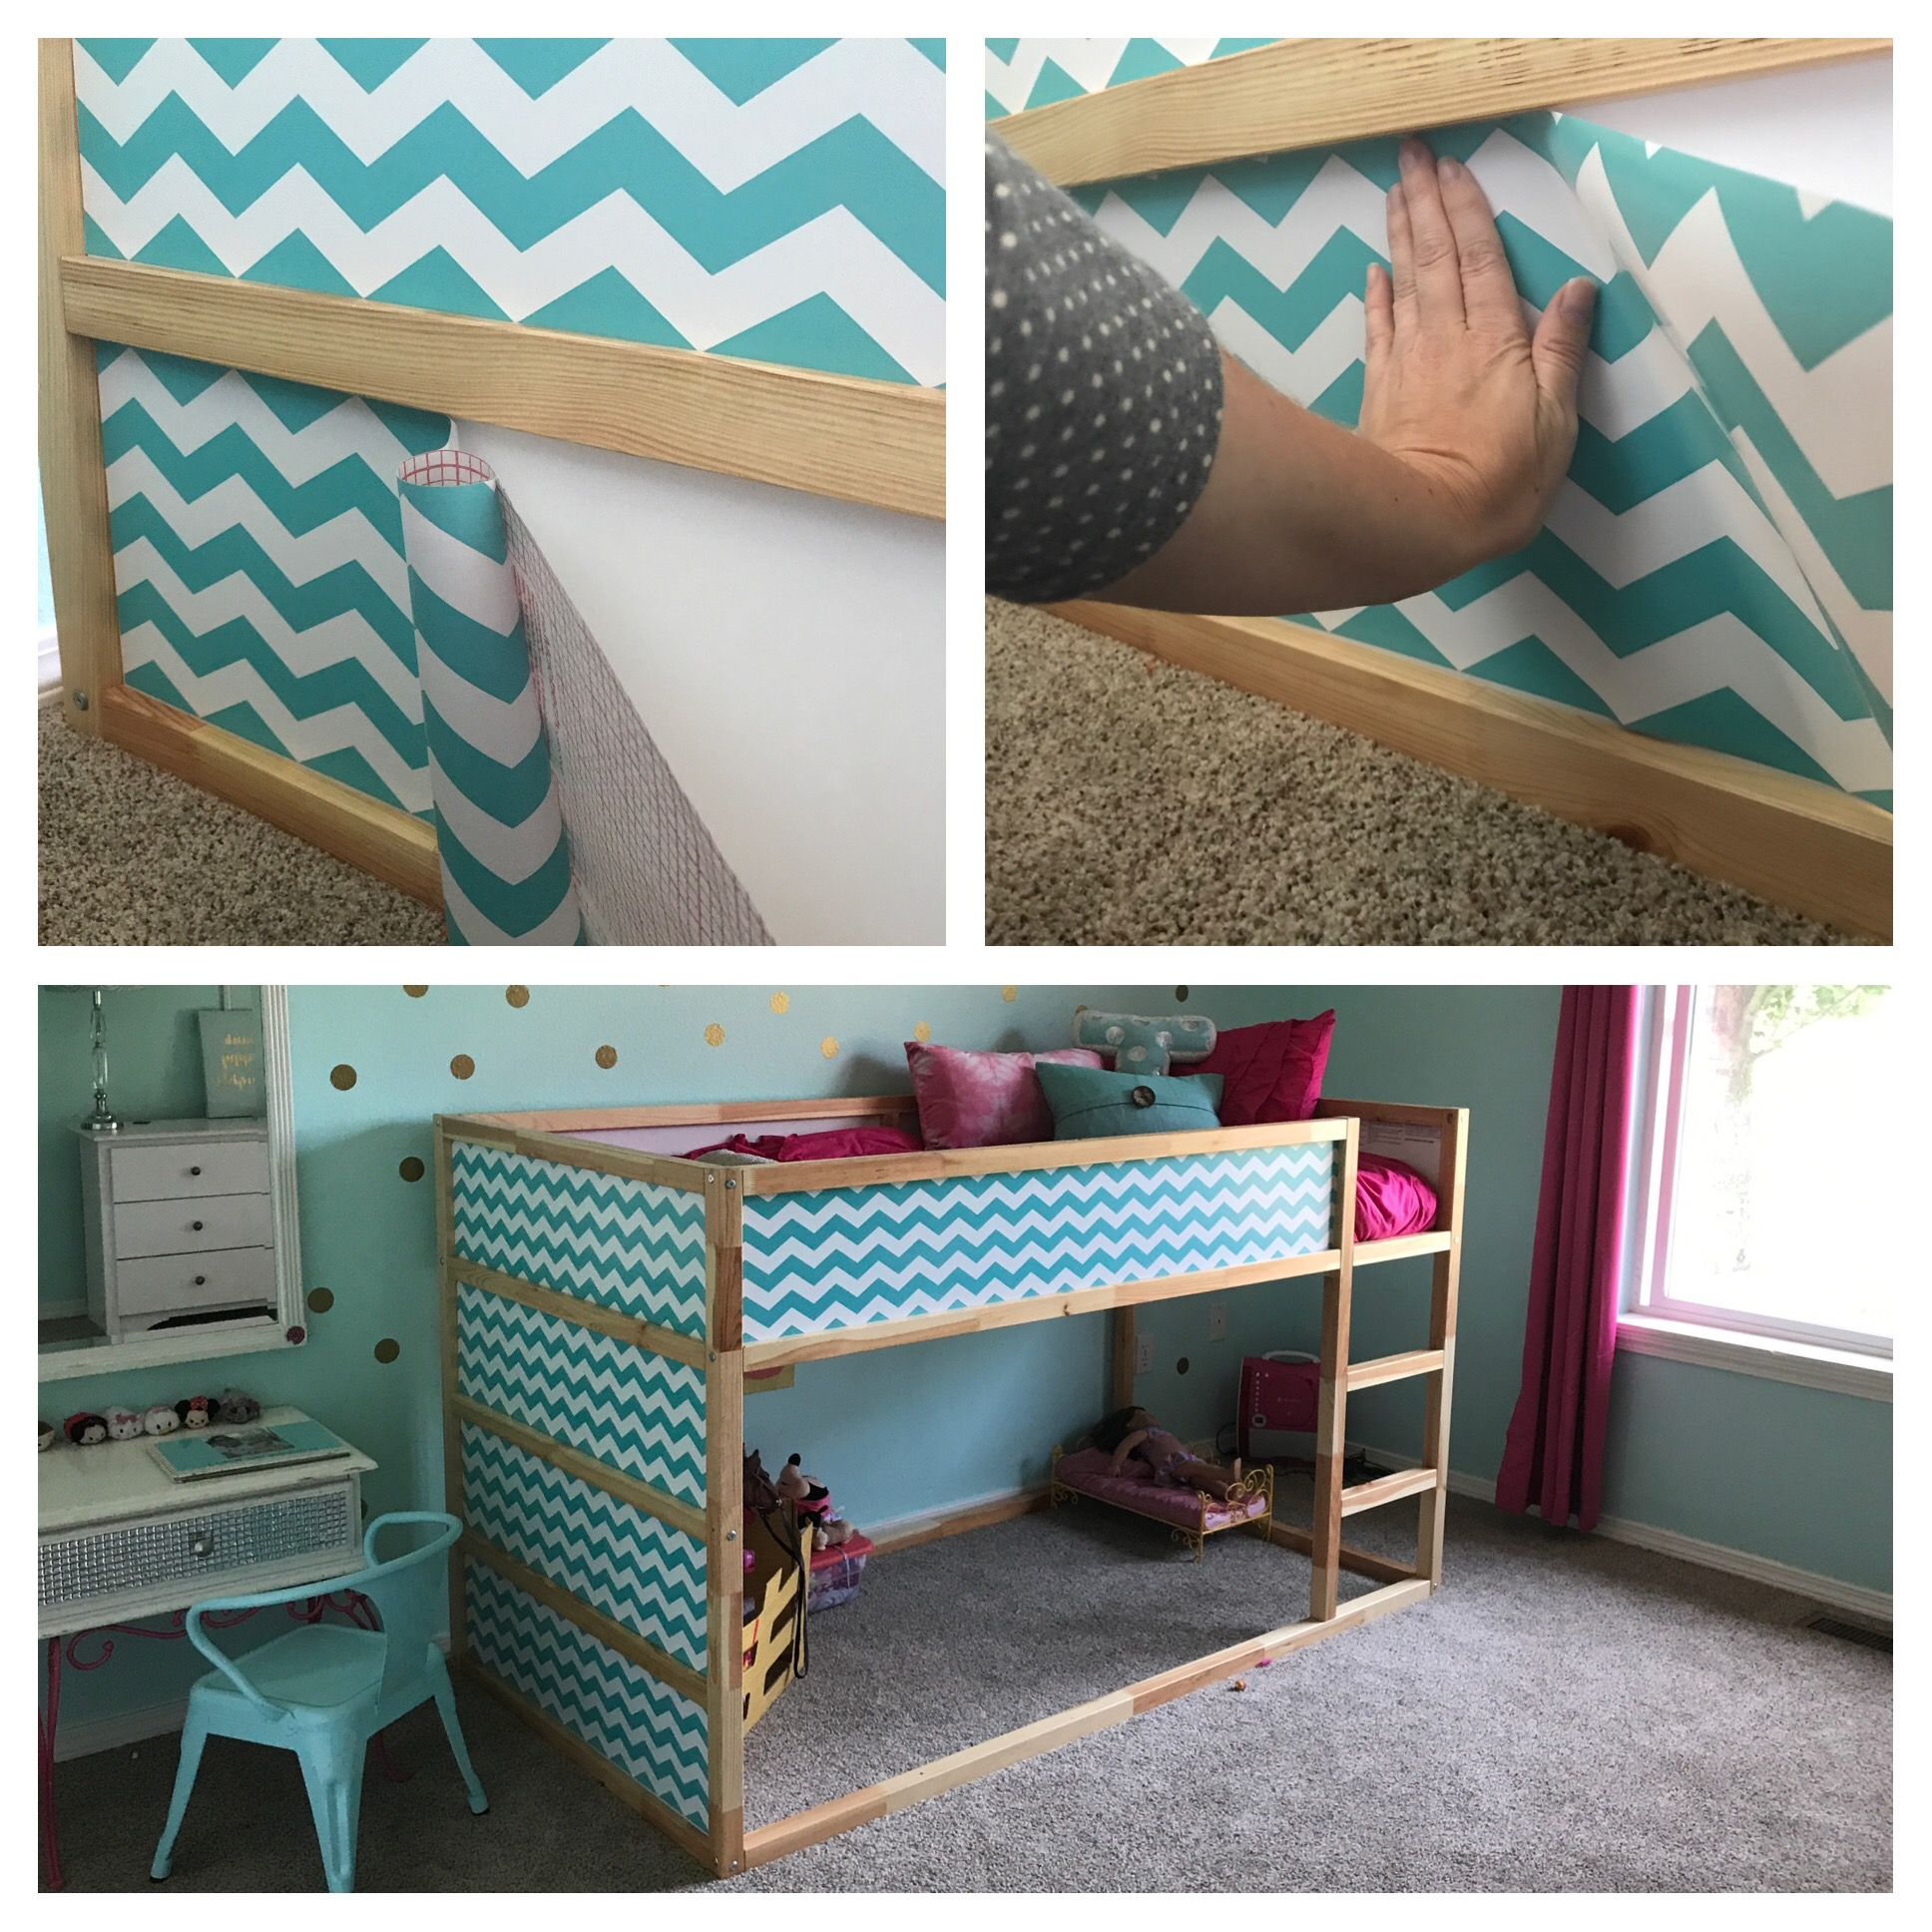 Contact Paper Shelf Liner Added To Ikea Kura Bed A Fun Easy Way To Add Color To The White Panels For Under 10 And Less Ikea Kura Bed Kura Bed White Paneling